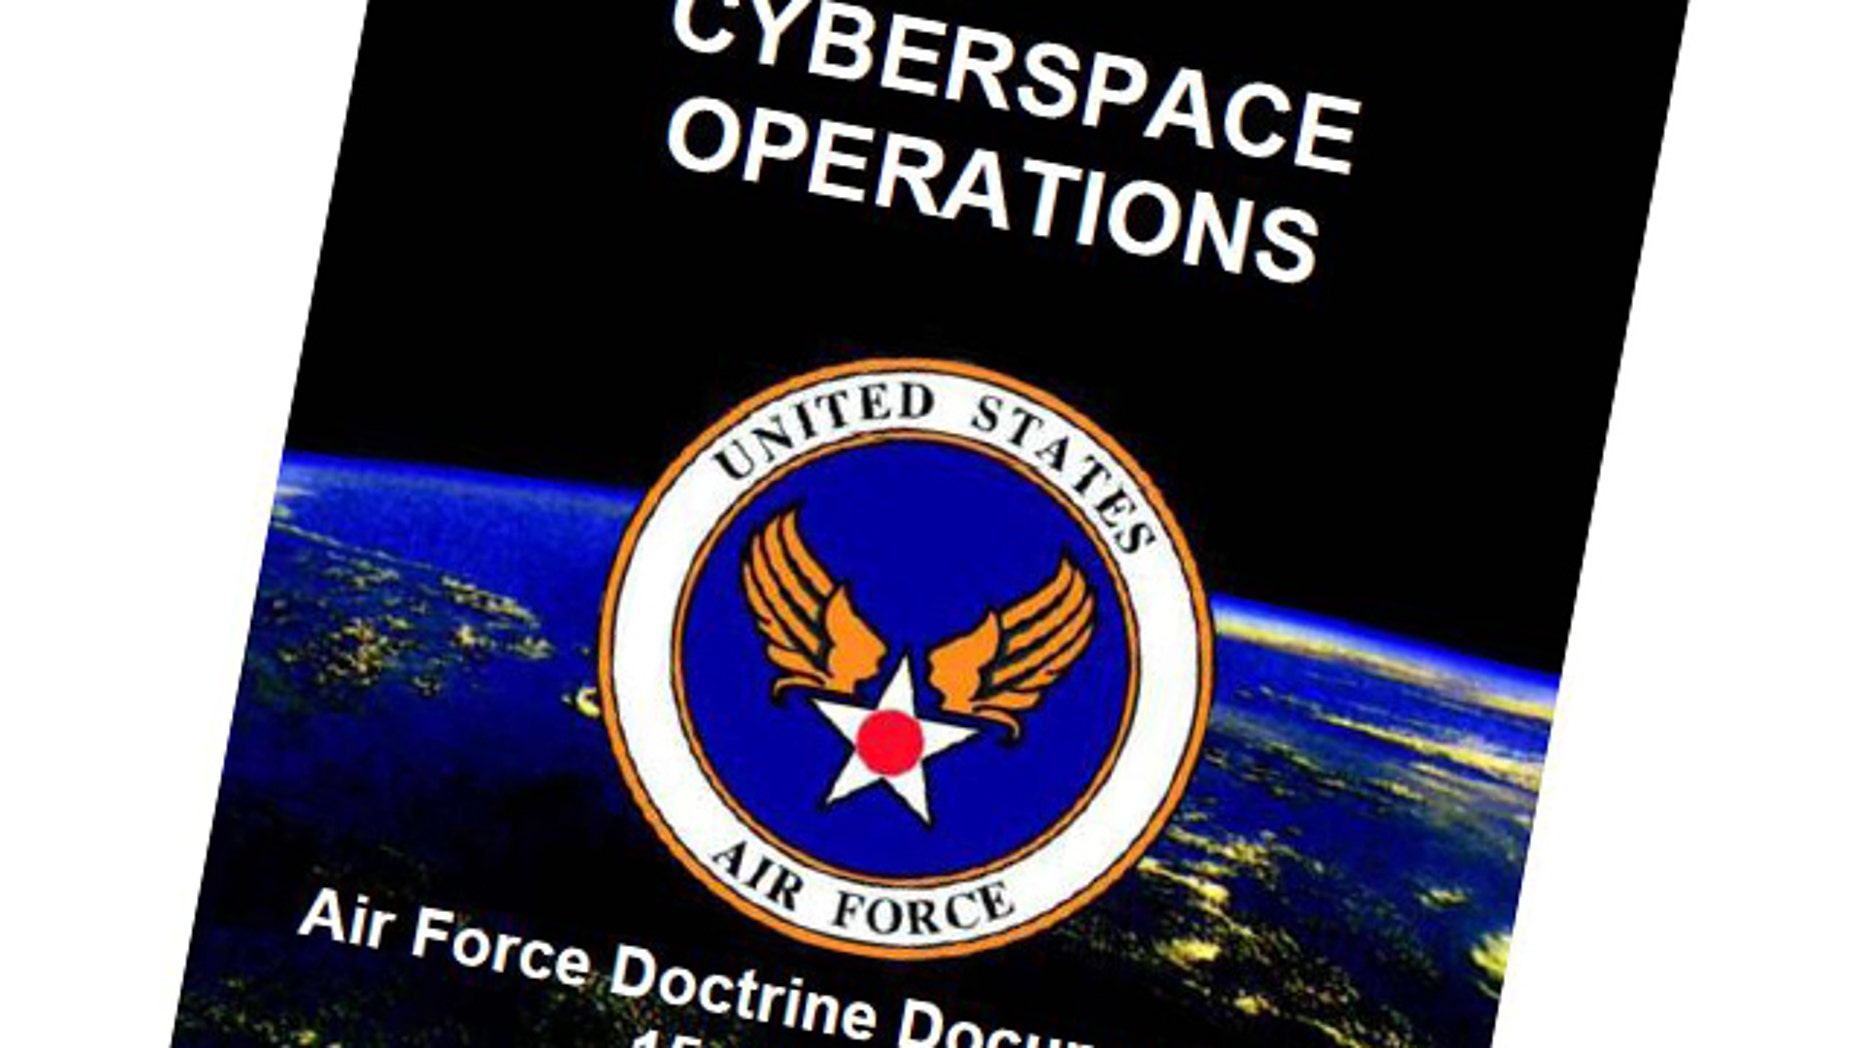 """AFDD 3-12 documents Air Force operations in cyberspace, defining terms and setting a means of maintaining """"Cyberspace Superiority."""""""